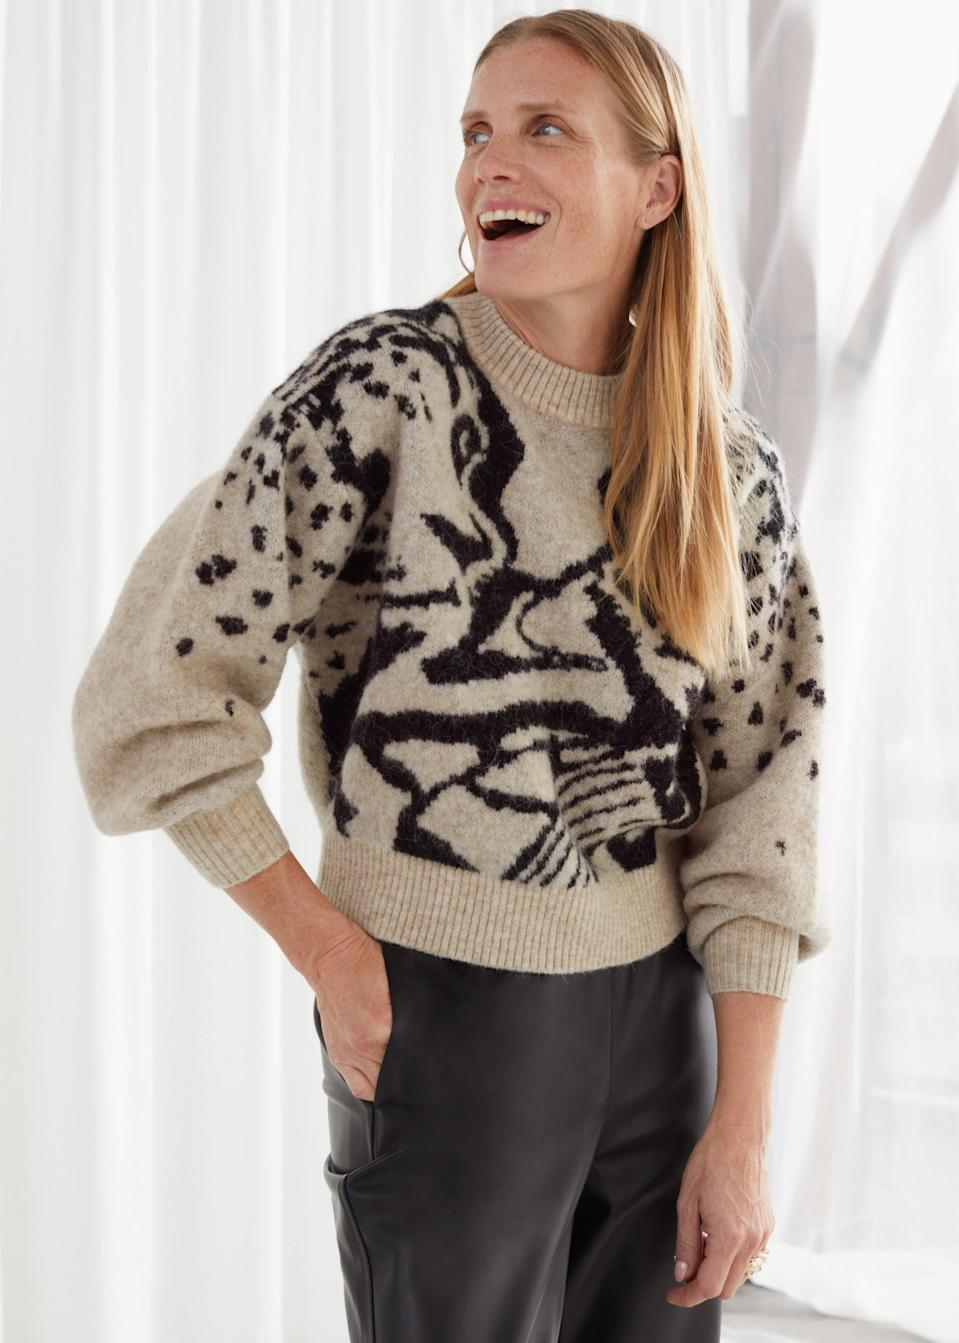 "<p>""The most critical factor to consider when it comes to sweater shopping is fit. I love loose-fitting sweaters with balloon or relaxed sleeves, and this cropped <span>& Other Stories Jacquard Knit Sweater</span> ($119) hits such a good balance between the sleeves and cuffs. The print is epic. I want to wear this with gold jewelry."" - RB</p>"